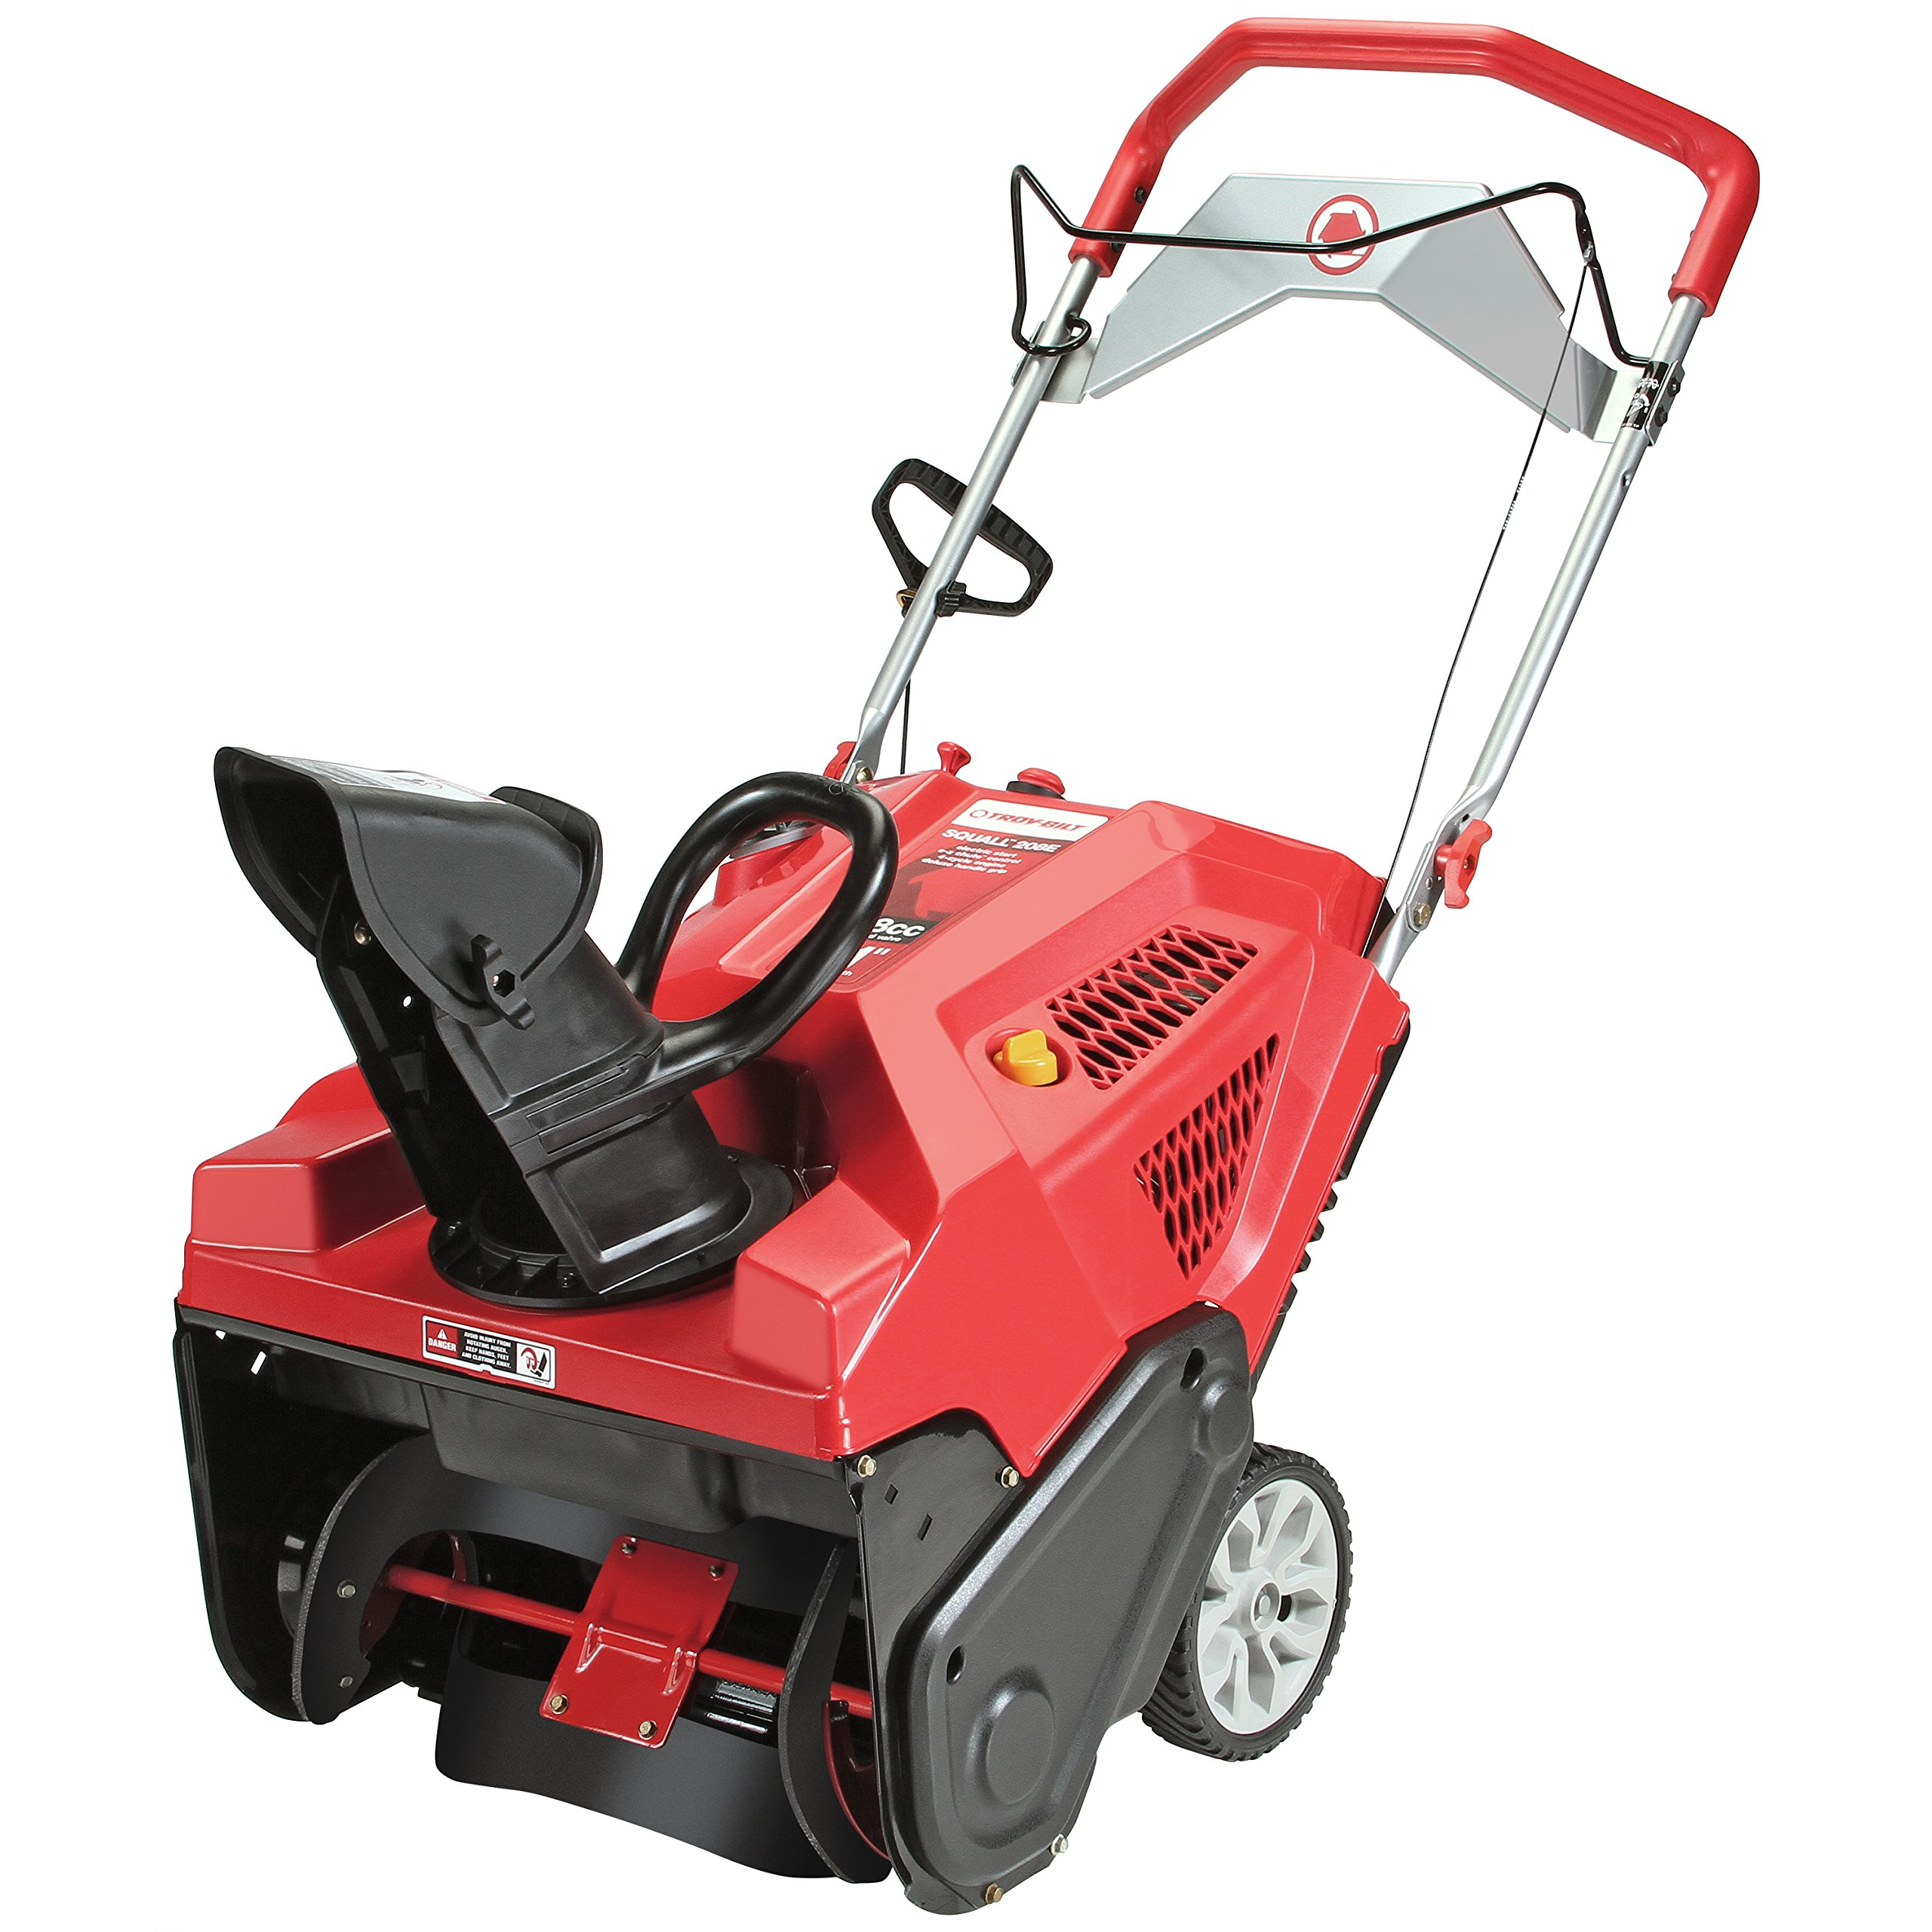 Troy-Bilt Squall 208cc Electric Start 21-Inch Single Stage Gas Snow Thrower by Troy-Bilt